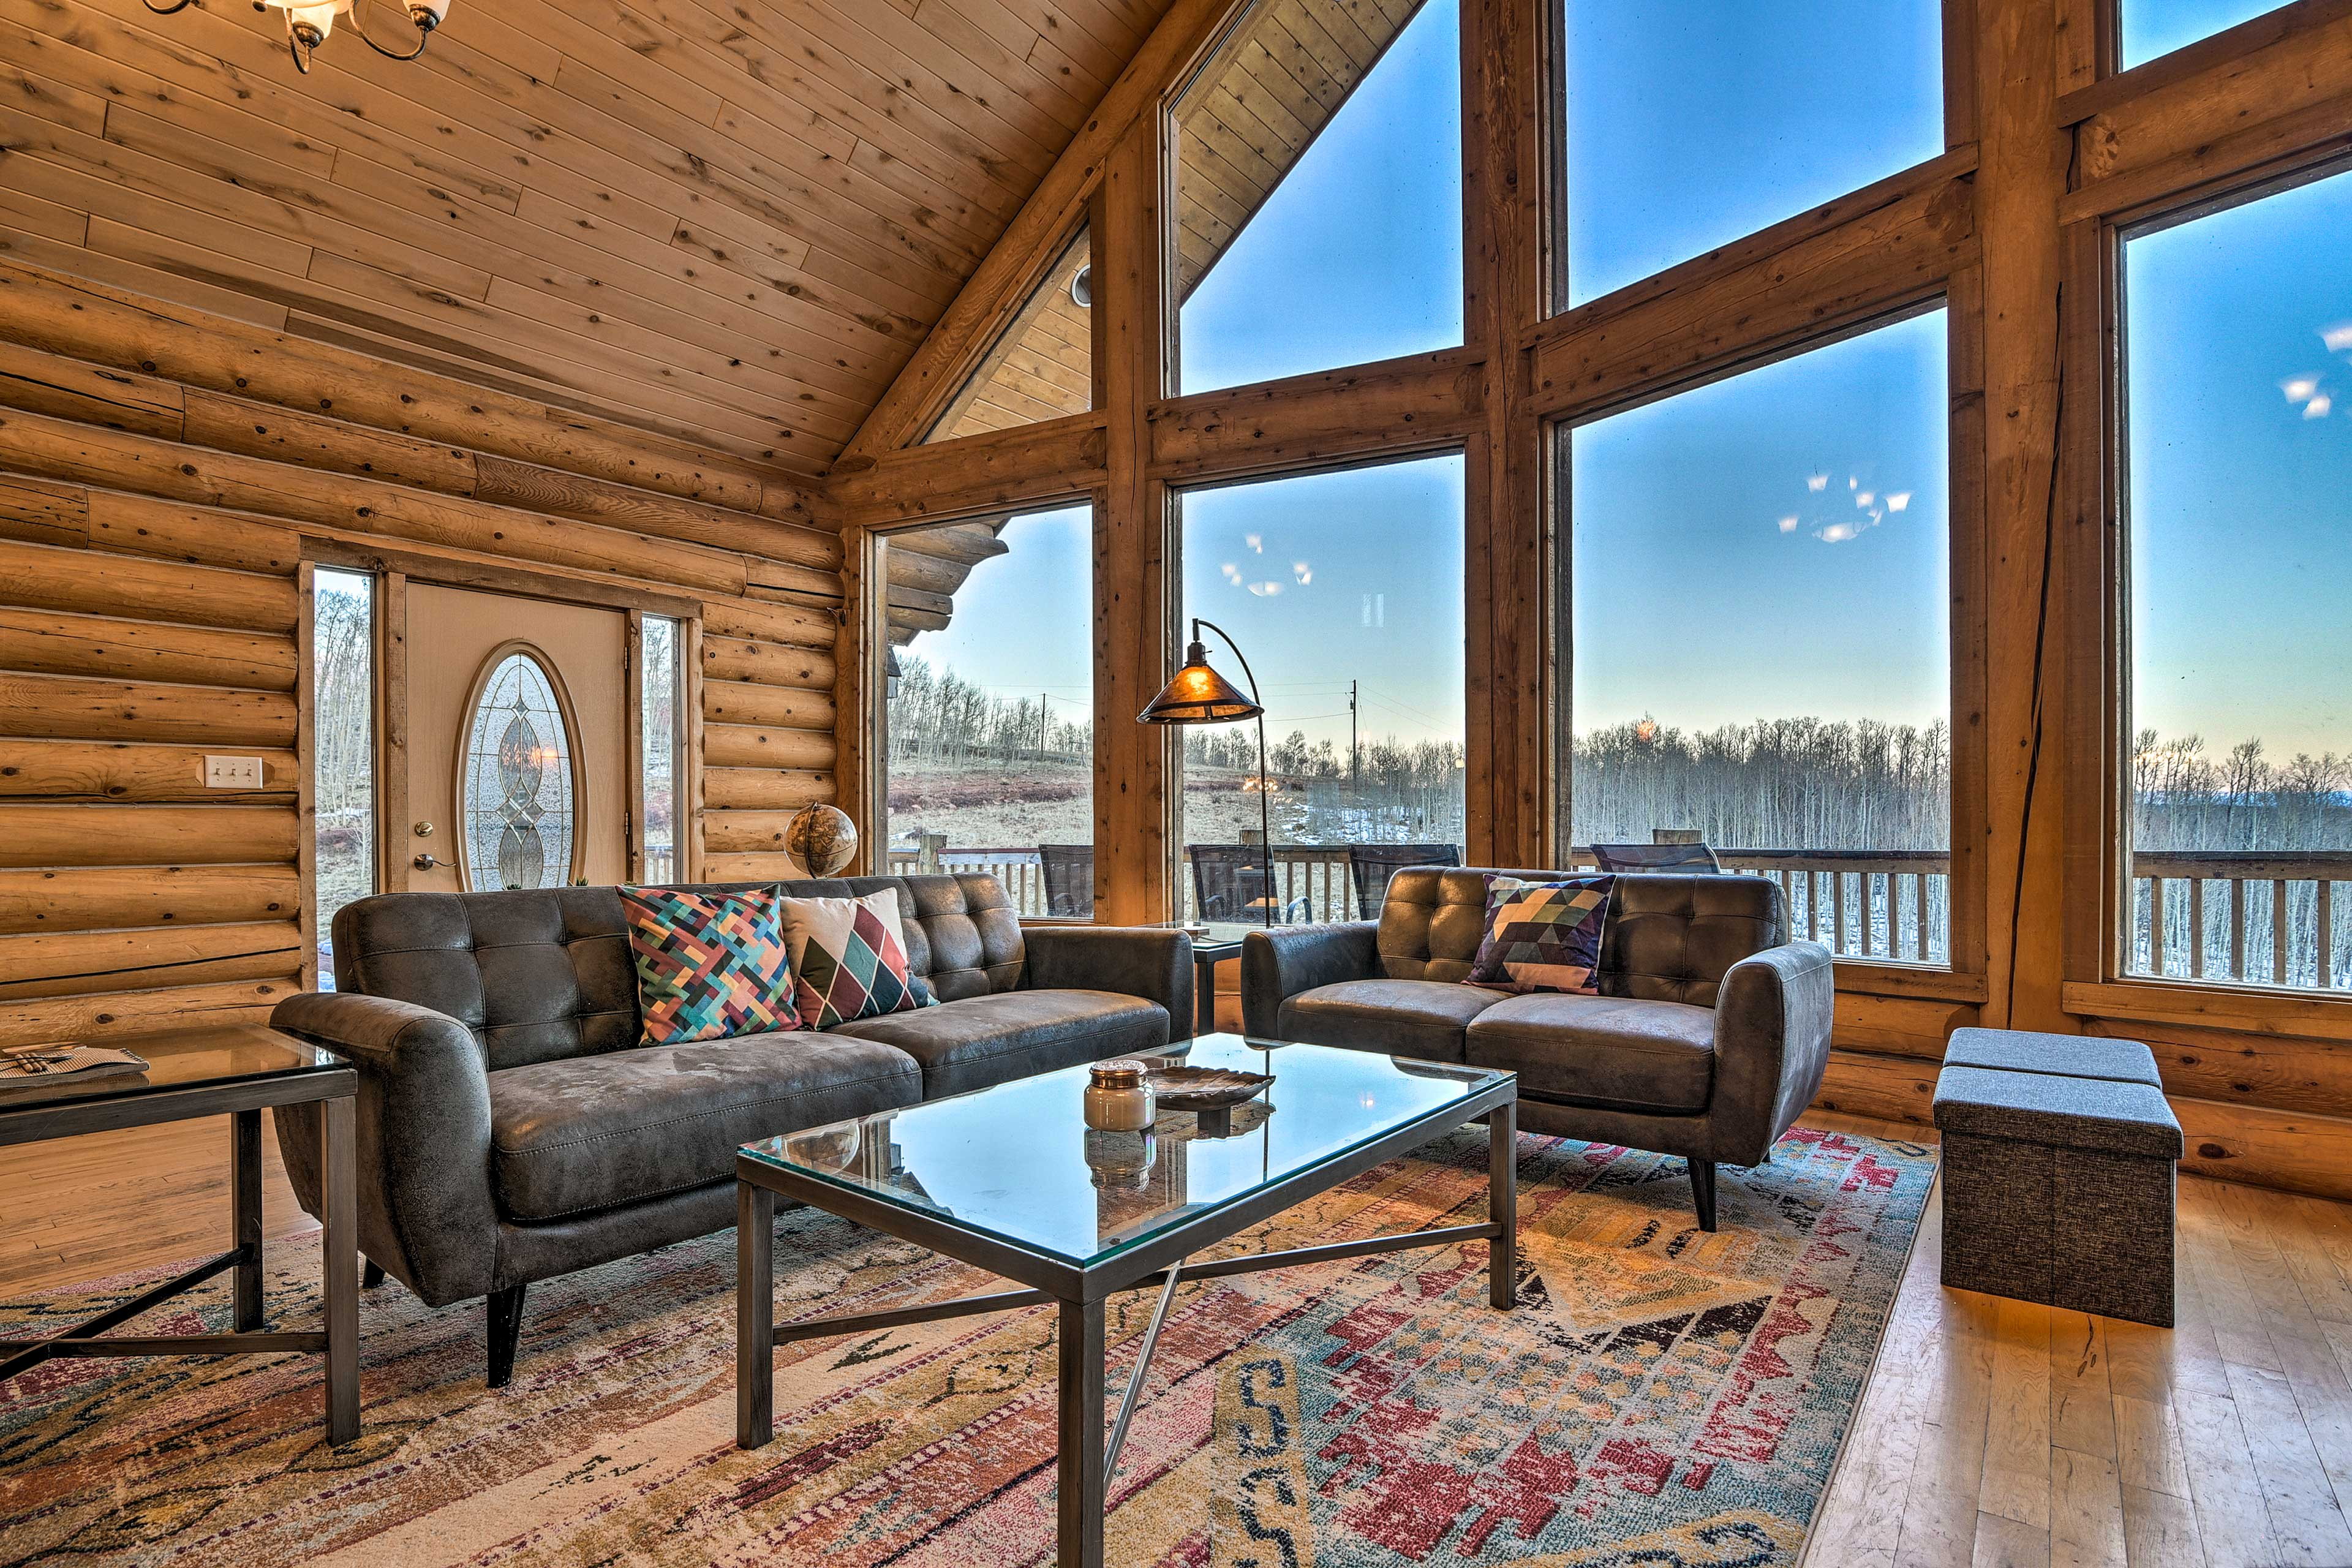 Enjoy immaculate views through the wall of windows.